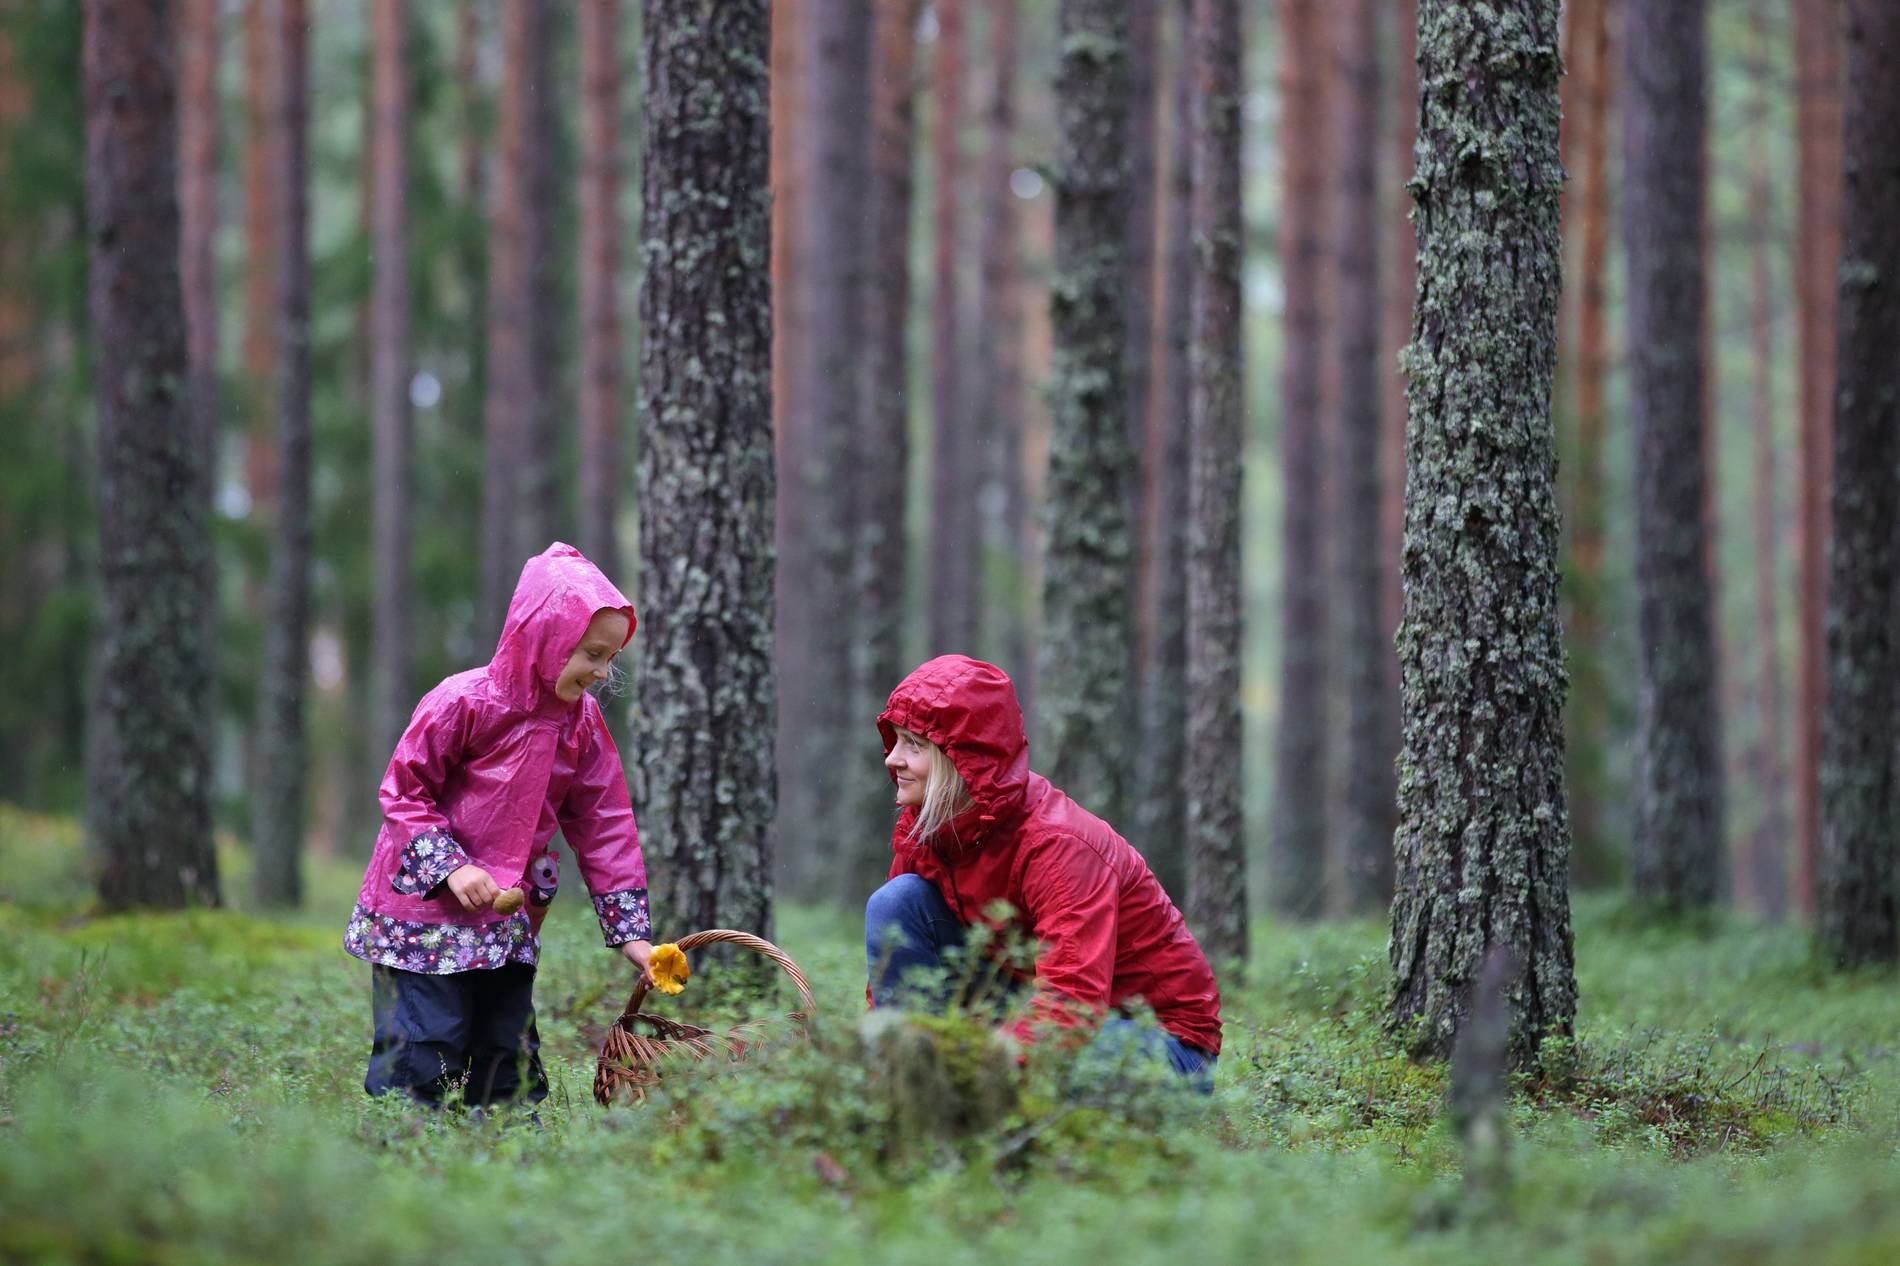 Mushroom picking in the surroundings of Tallinn, Estonia. Photo by: Remo Savisaar